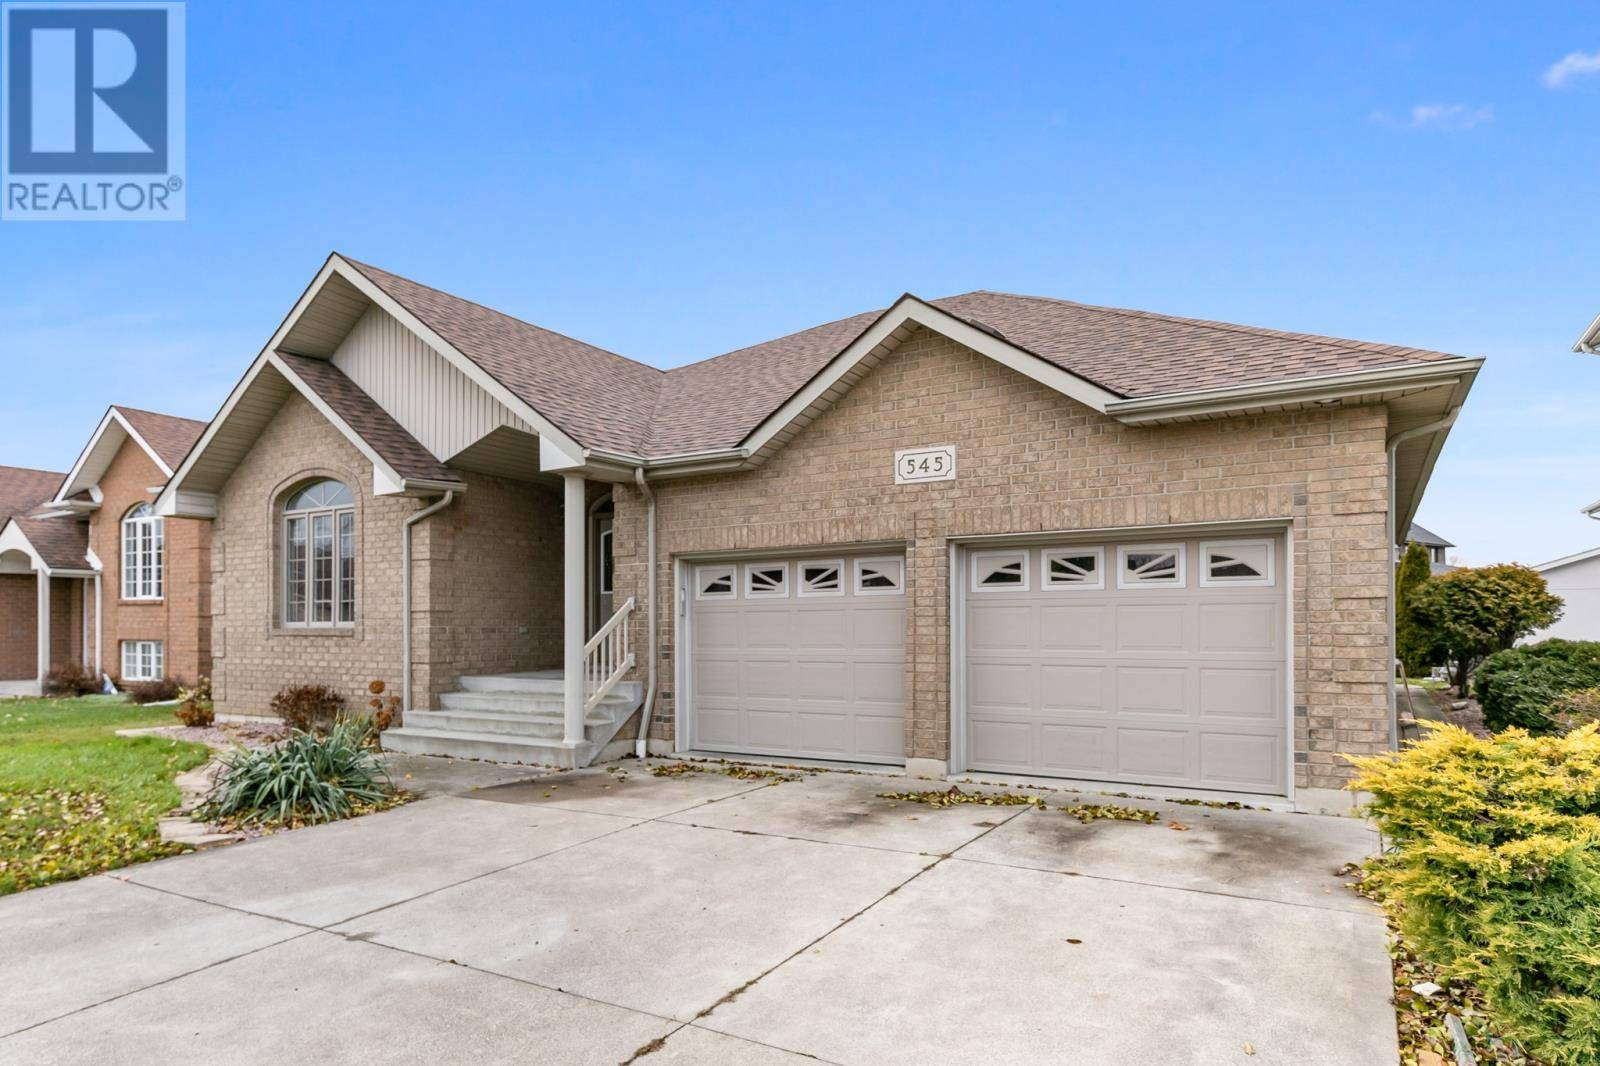 House for sale at 545 Bellagio  Windsor Ontario - MLS: 20002038